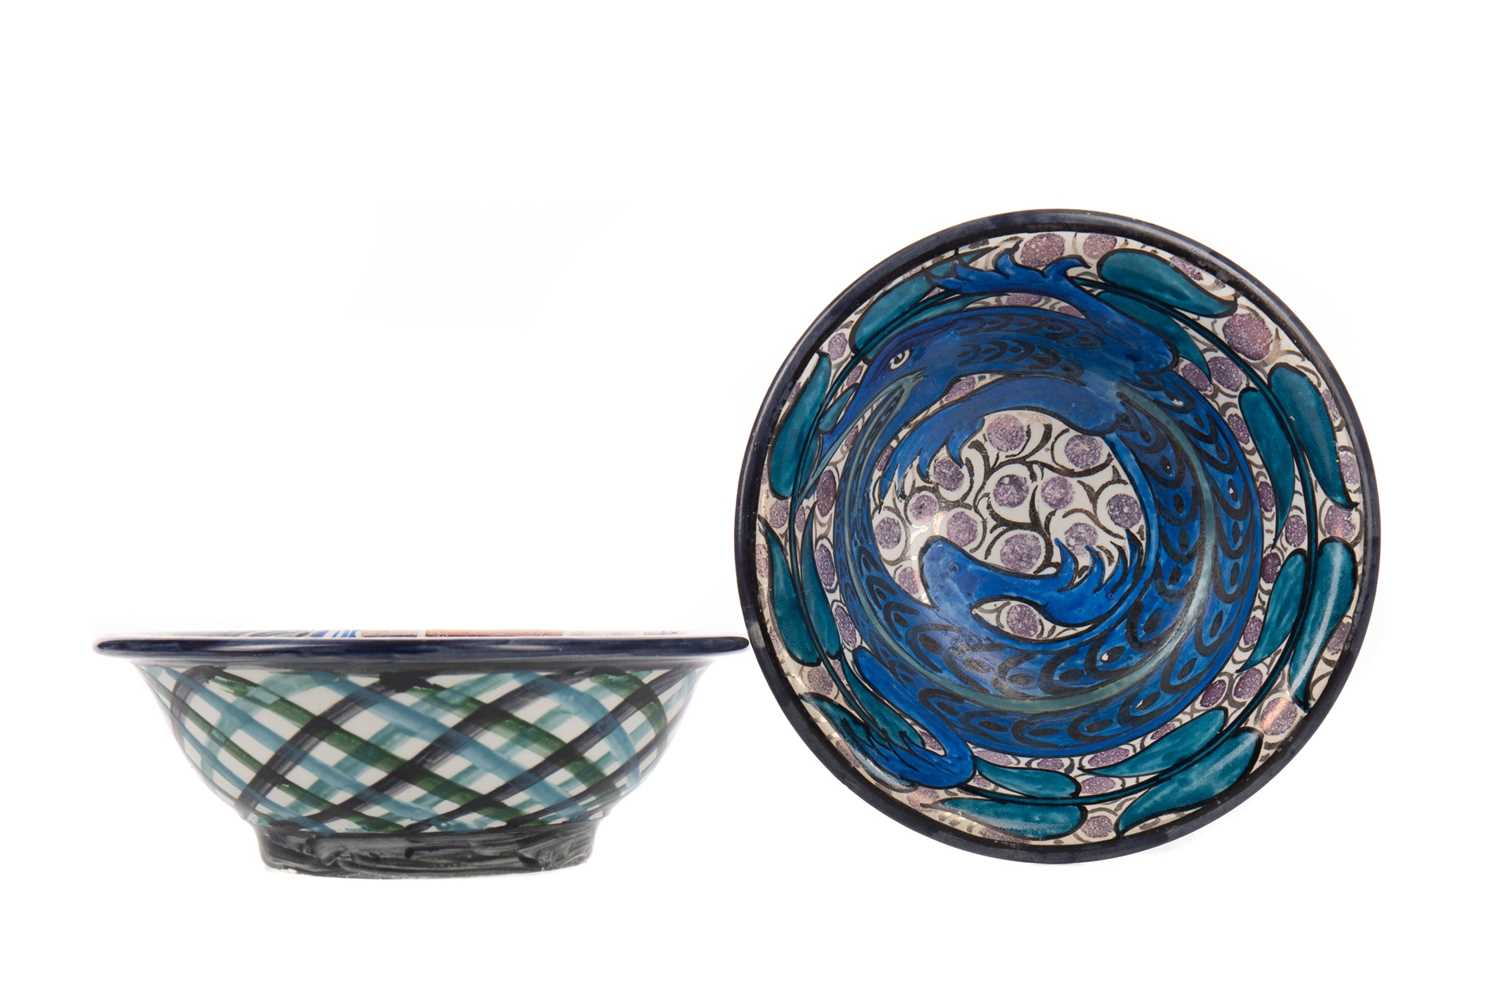 Lot 1021 - TWO ARTS & CRAFTS LUSTRE BOWLS BY JOHN PEARSON (1859-1930)